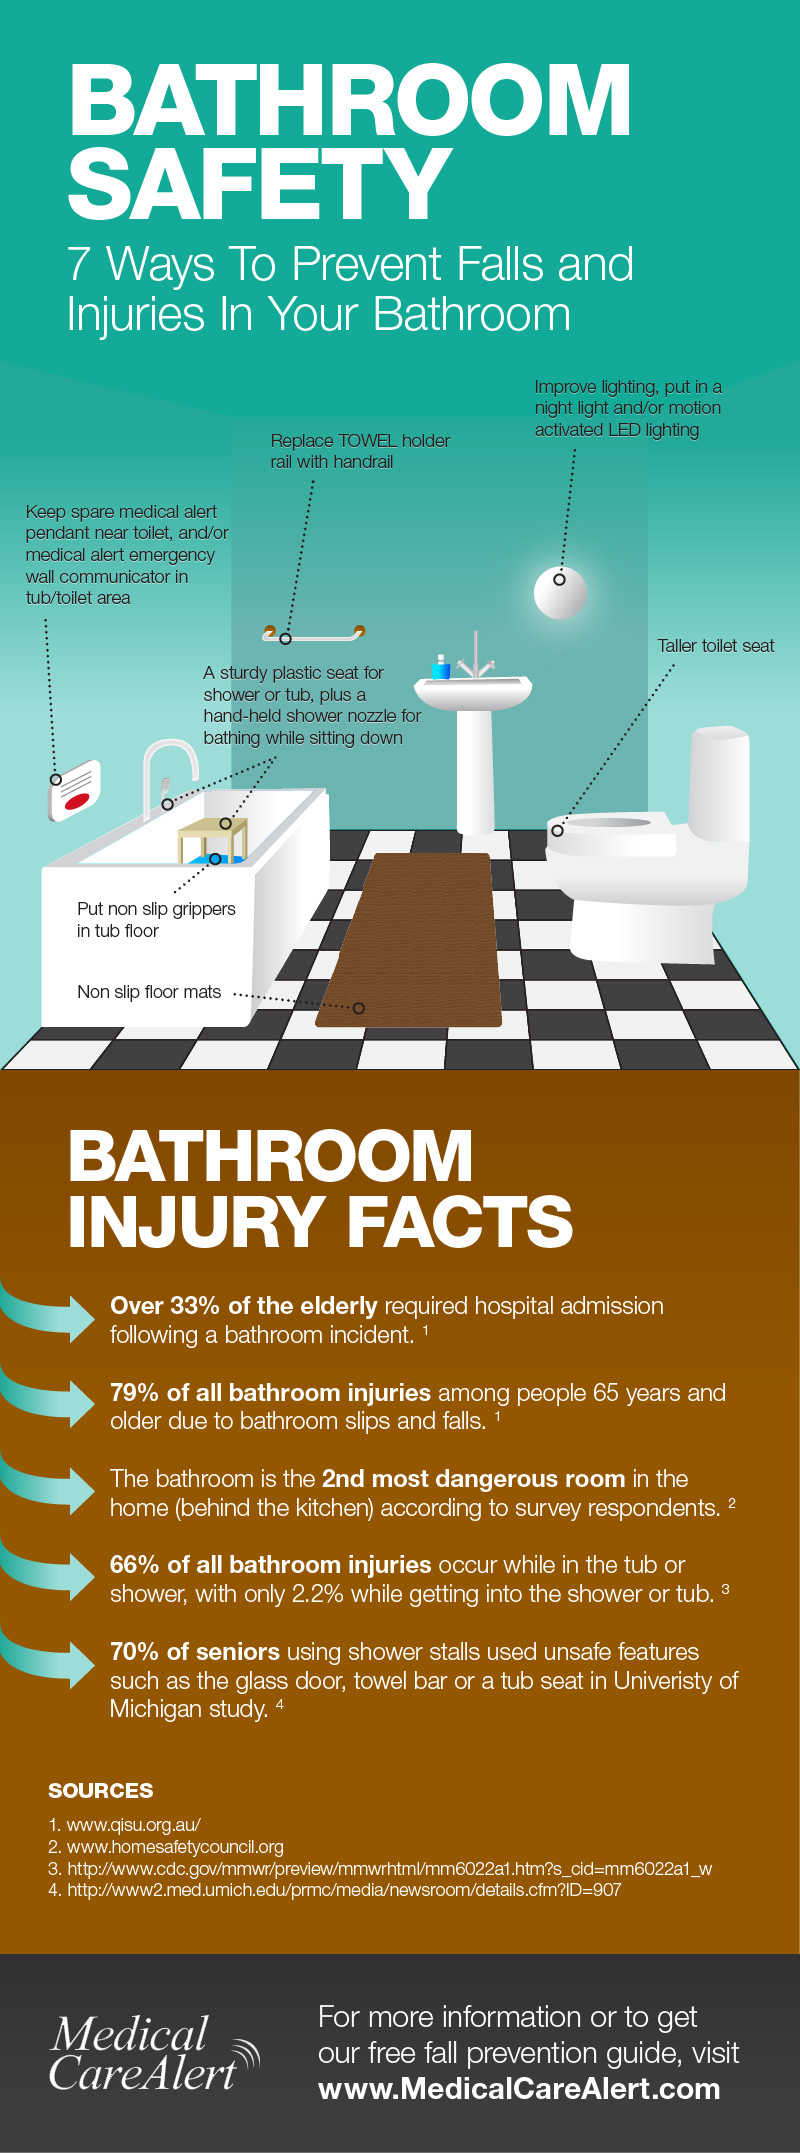 An infographic showing bathroom safety tips from Medical Care Alert